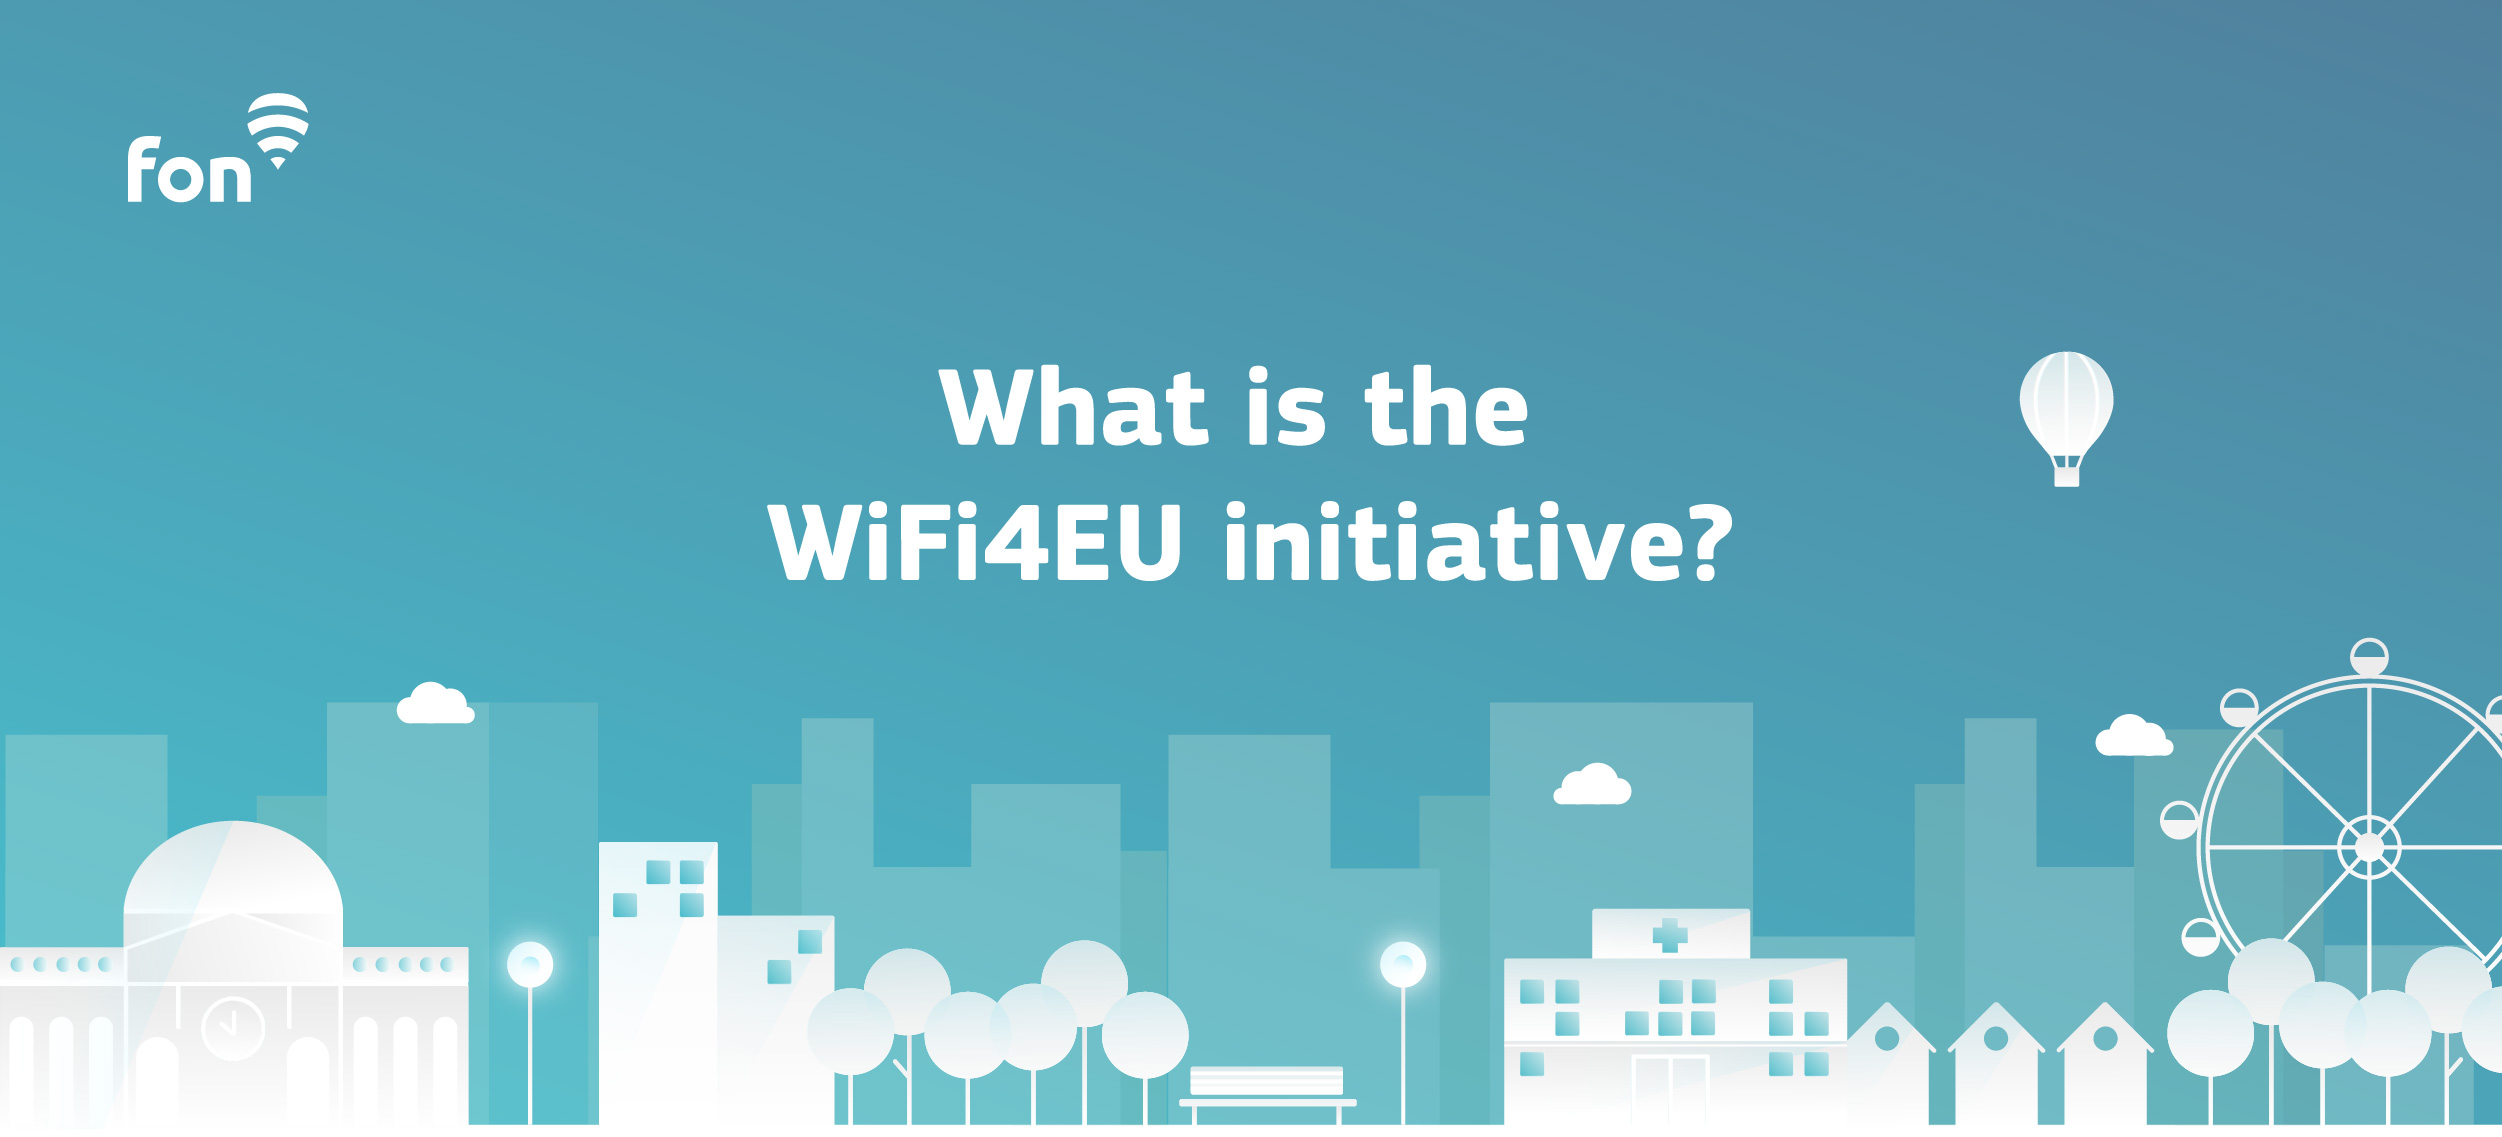 Europe backs free WiFi connectivity with WiFi4EU